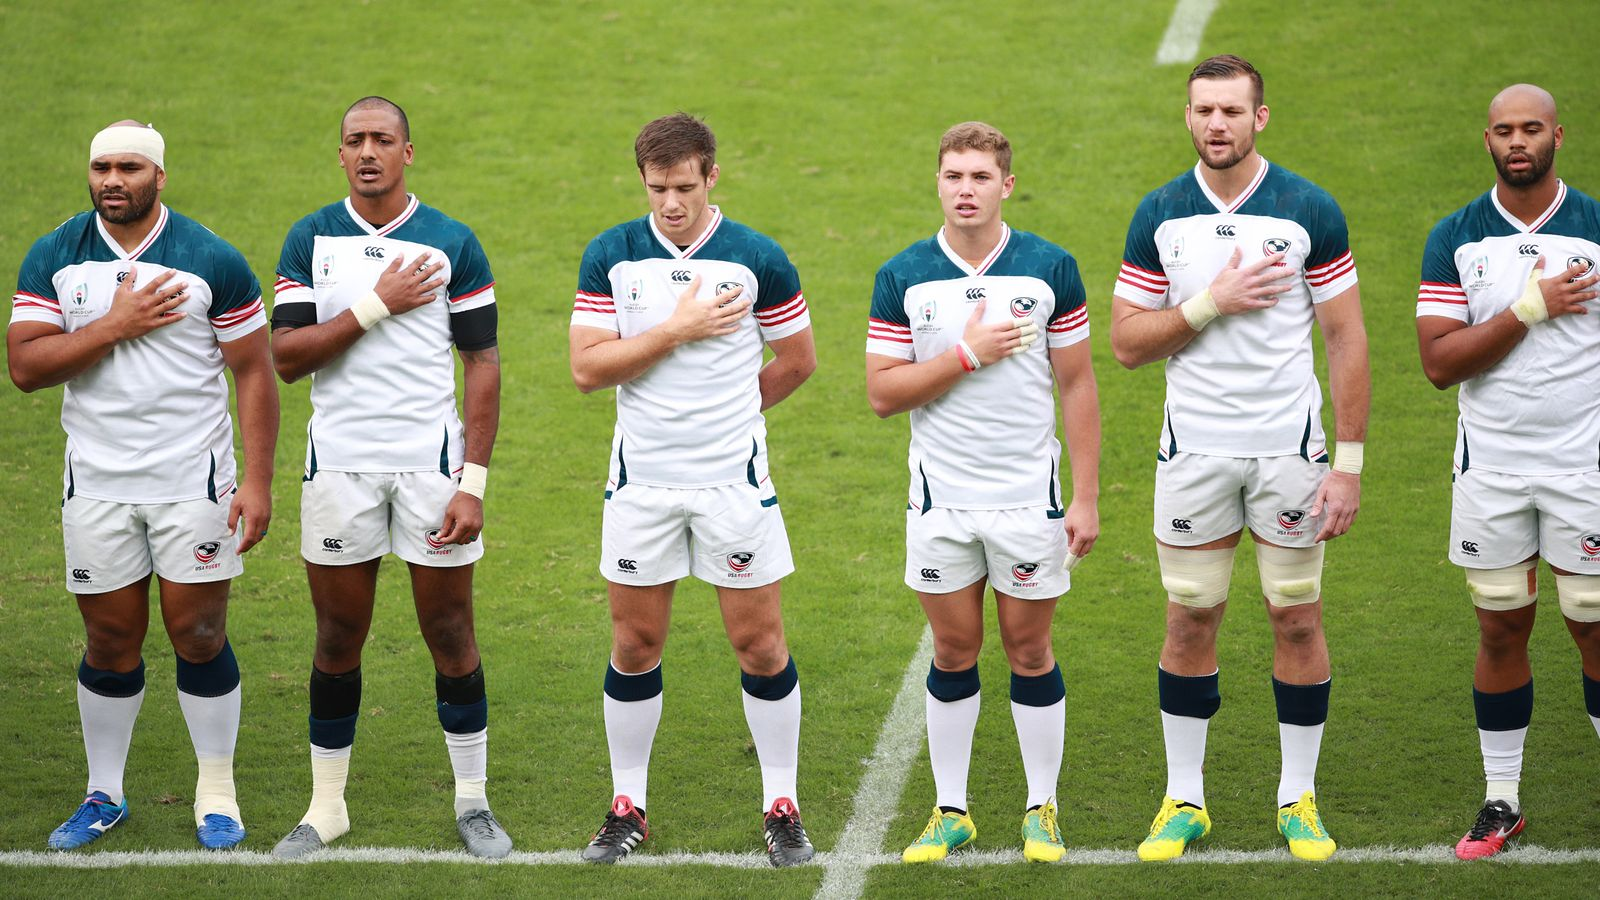 USA Rugby board votes to file for bankruptcy amid coronavirus crisis